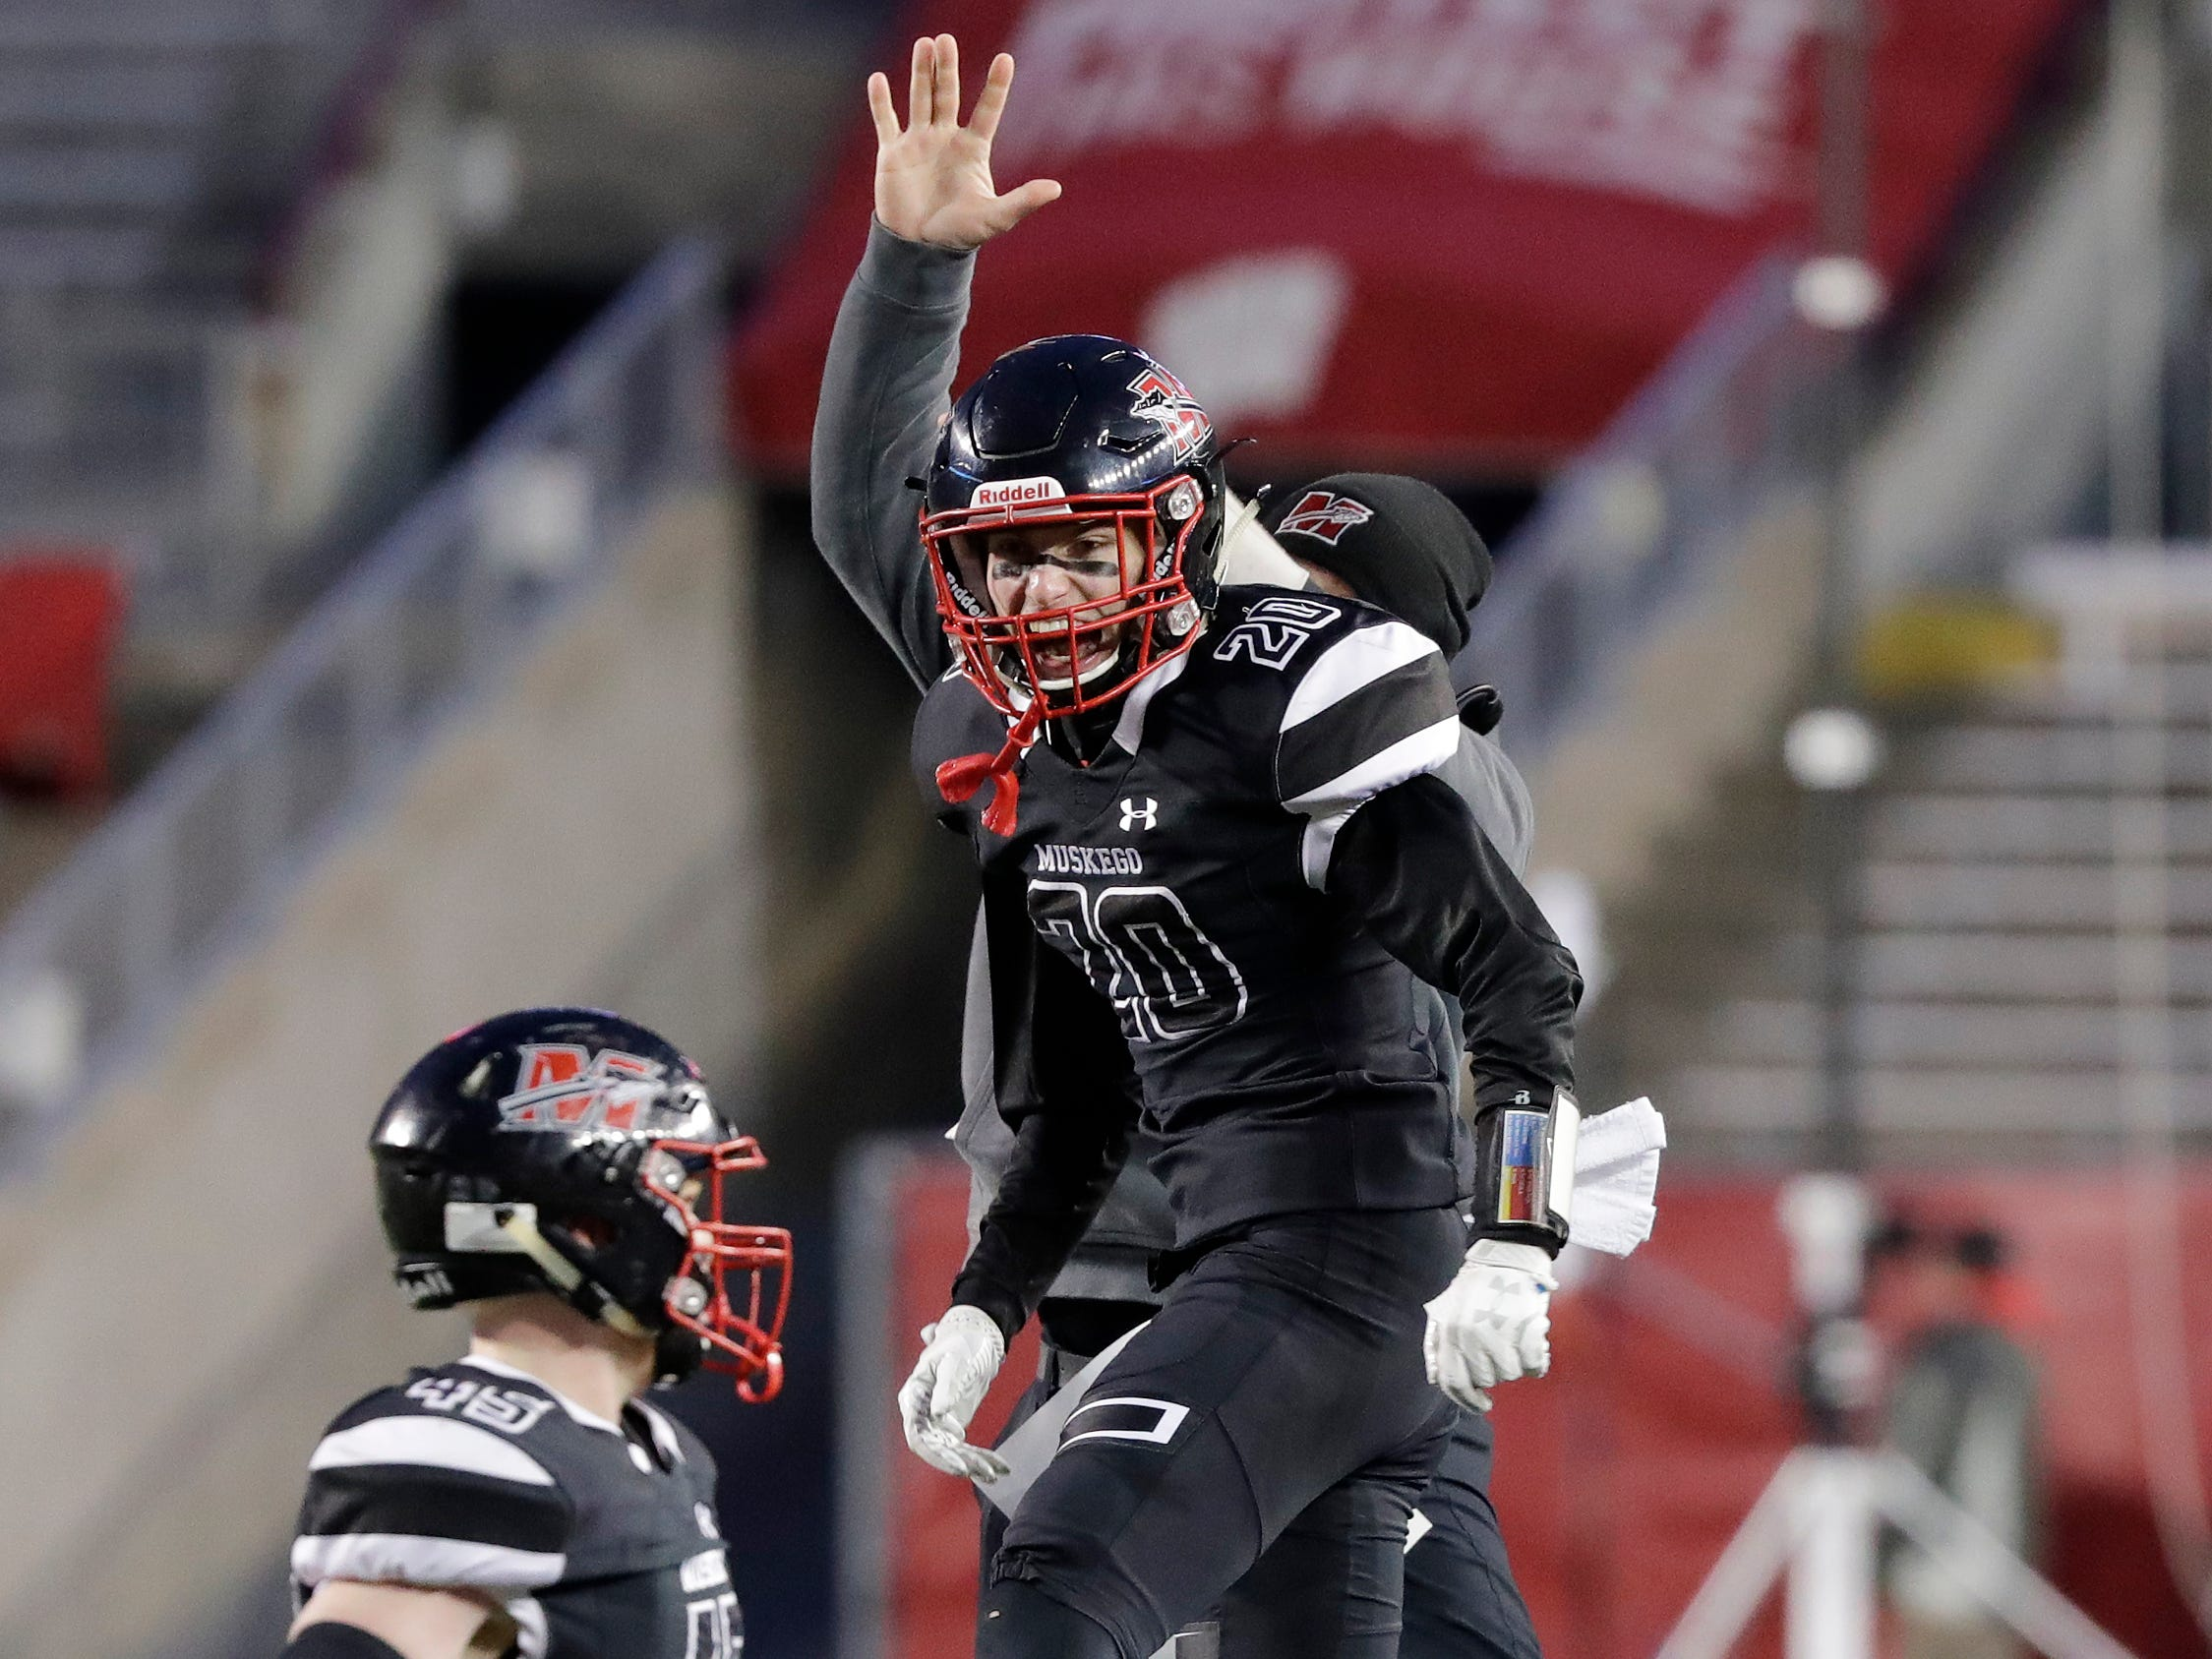 Muskego's Sam Chovanec (20) celebrates after an interception against Kimberly in the WIAA Division 1 championship game at Camp Randall Stadium on Friday, November 16, 2018 in Madison, Wis.